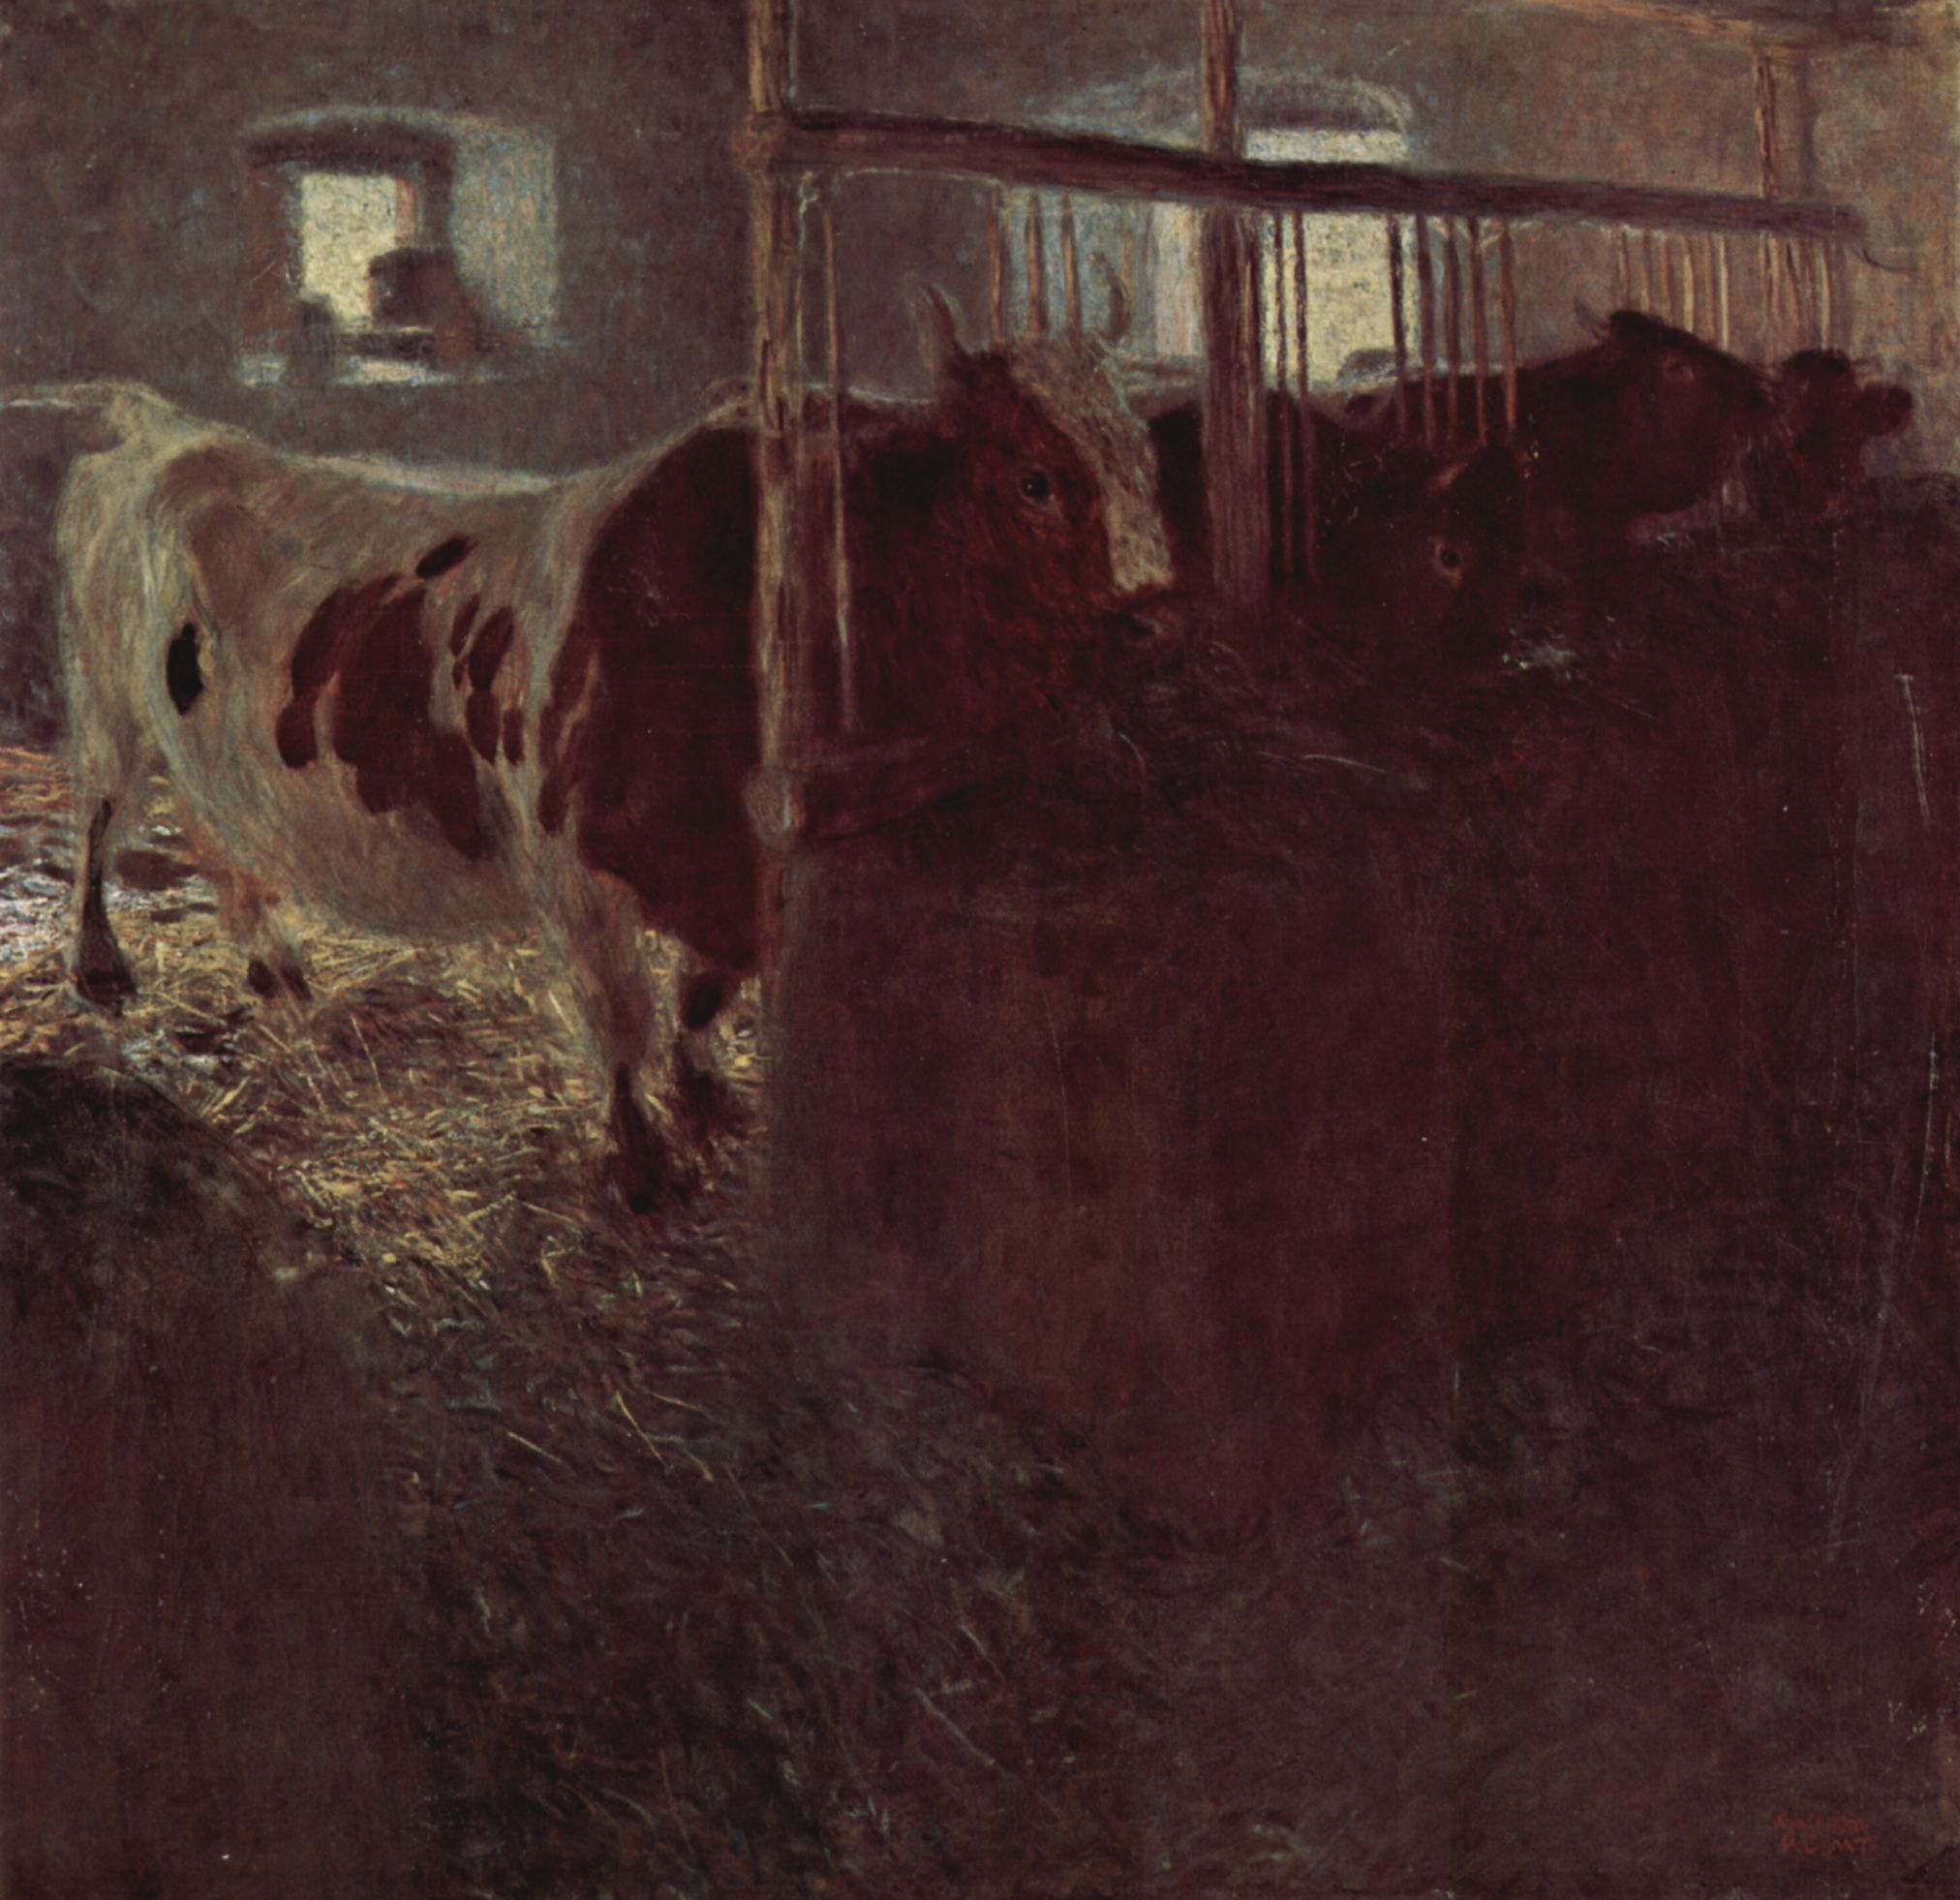 Cows in the barn, 1900-1901